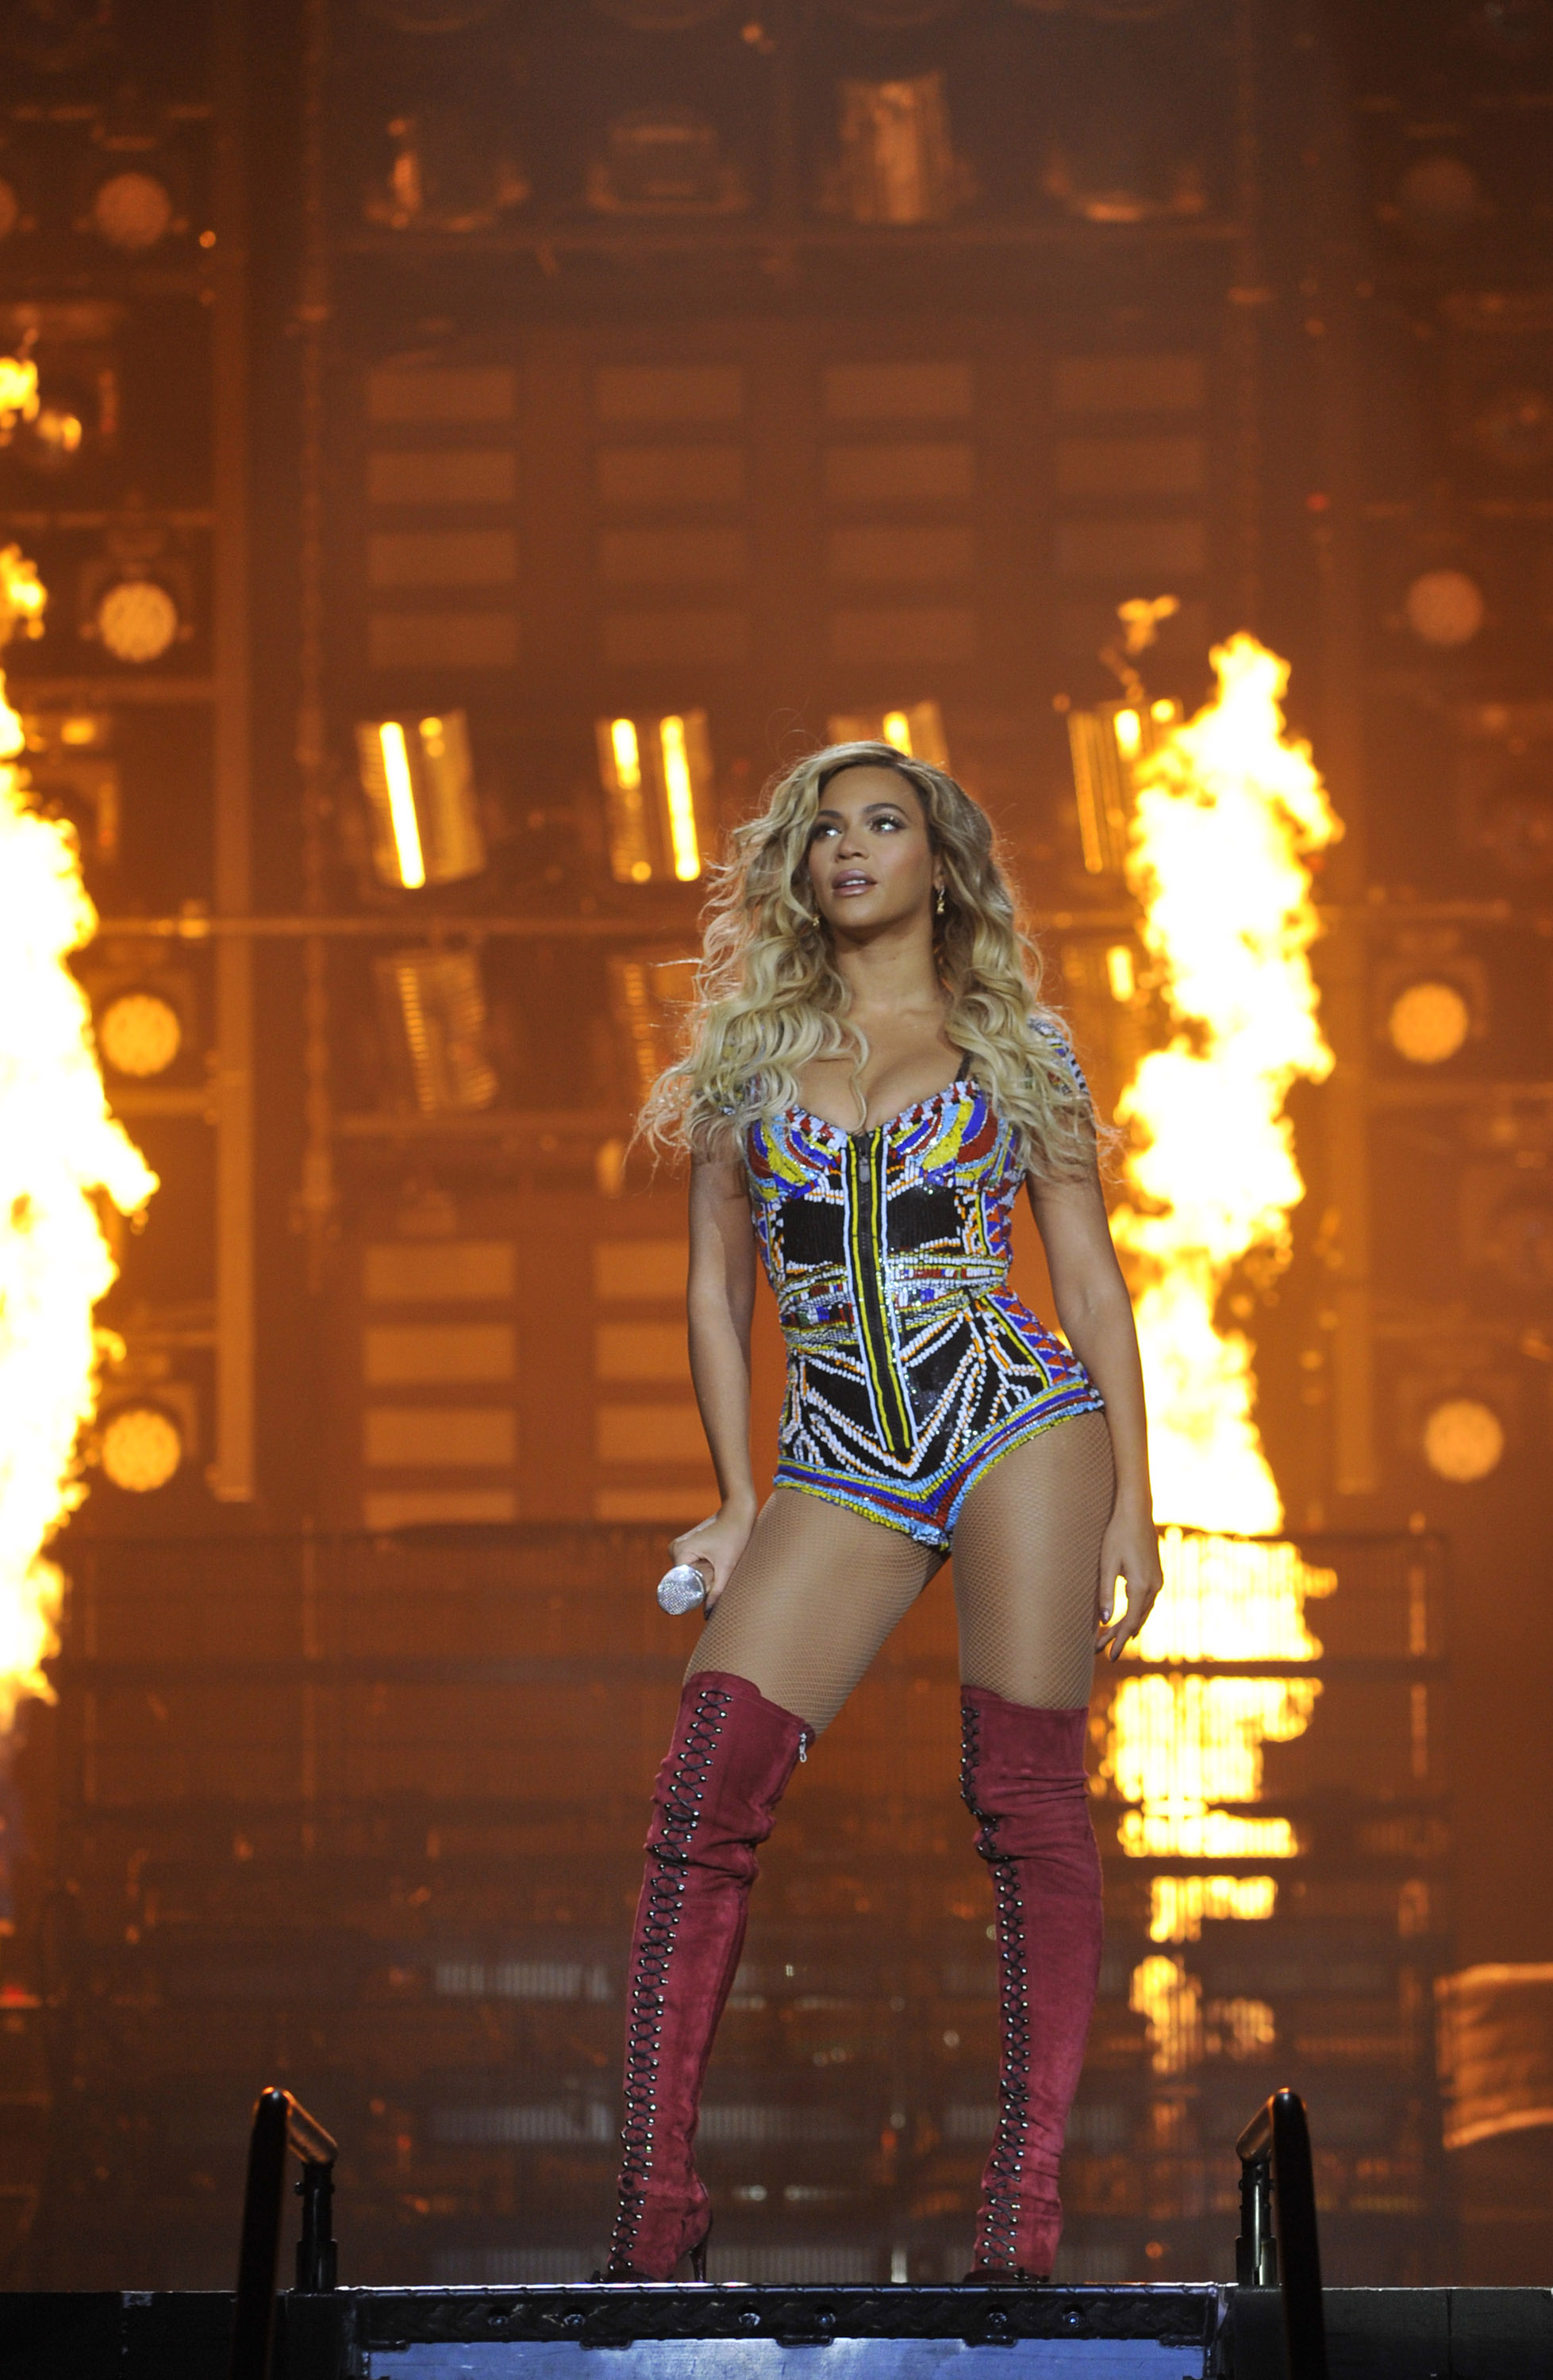 Beyonce performs on stage during  The Mrs. Carter Show World Tour  at the O2 Arena on March 6, 2014 in London, England.